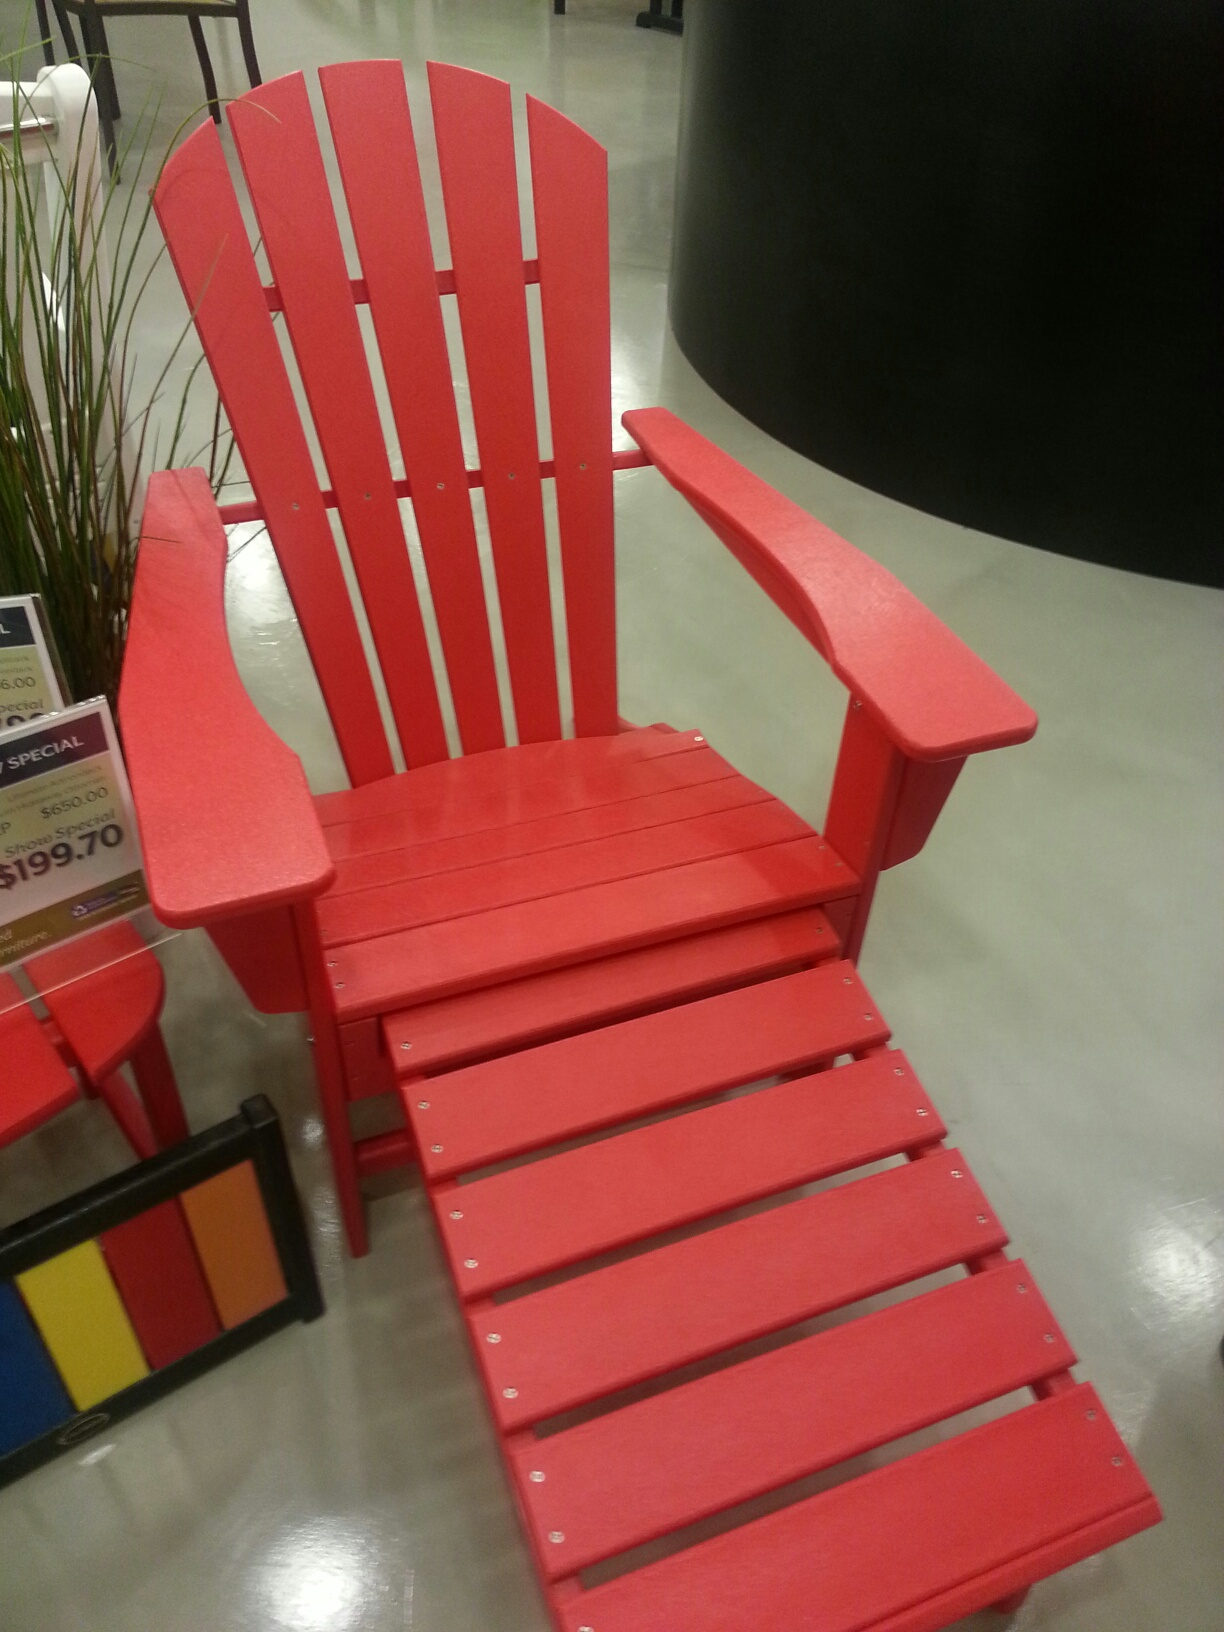 polywood adirondack chairs laz boy chair sale on with ottoman bay breeze patio so for a limited time only we re featuring the south beach and hideaway 399